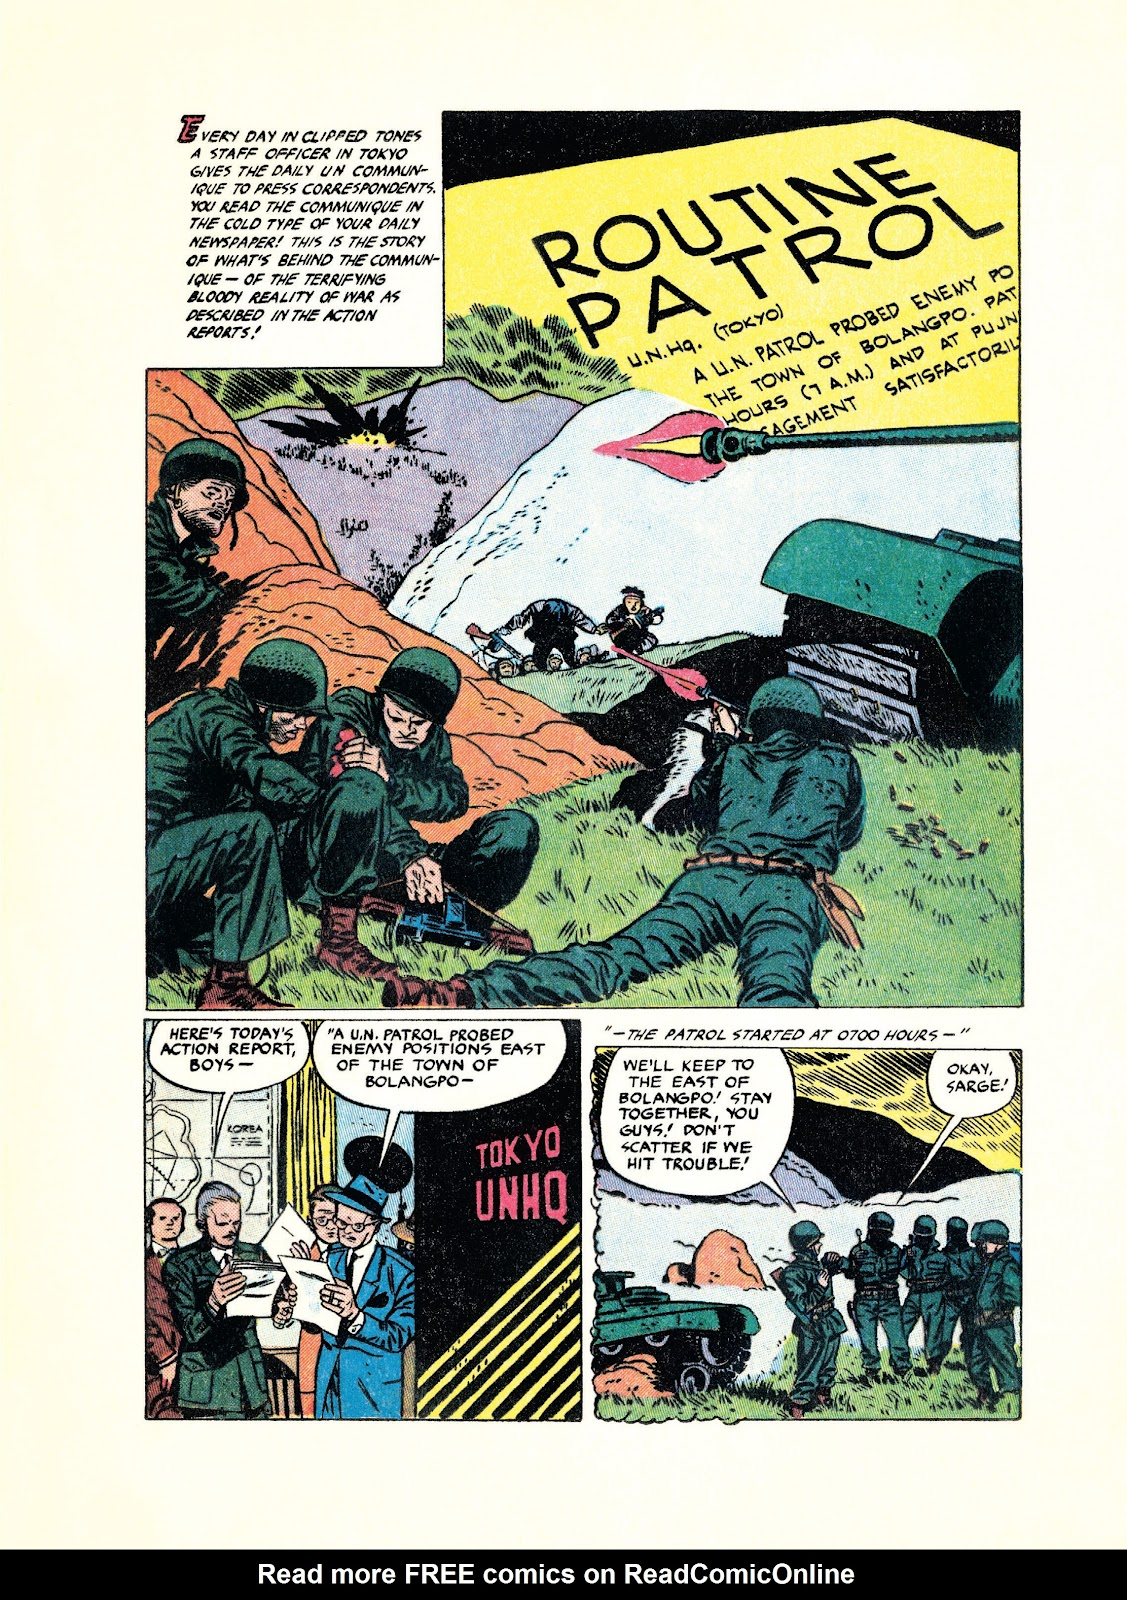 Read online Setting the Standard: Comics by Alex Toth 1952-1954 comic -  Issue # TPB (Part 2) - 42